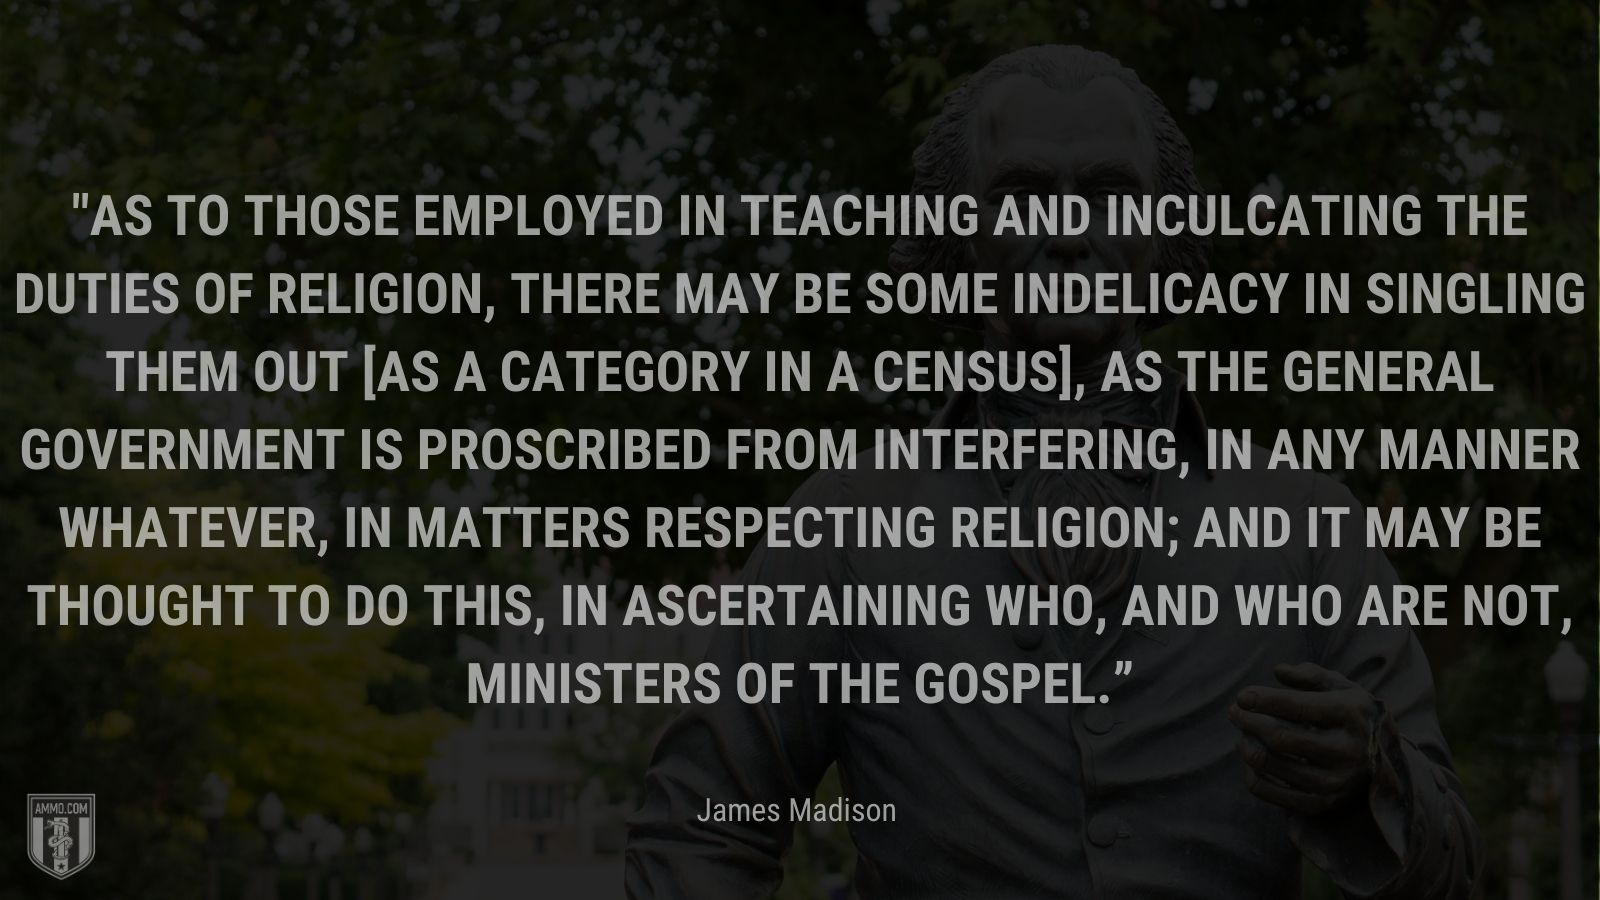 """""""As to those employed in teaching and inculcating the duties of religion, there may be some indelicacy in singling them out [as a category in a census], as the general government is proscribed from interfering, in any manner whatever, in matters respecting religion; and it may be thought to do this, in ascertaining who, and who are not, ministers of the gospel."""" - James Madison"""